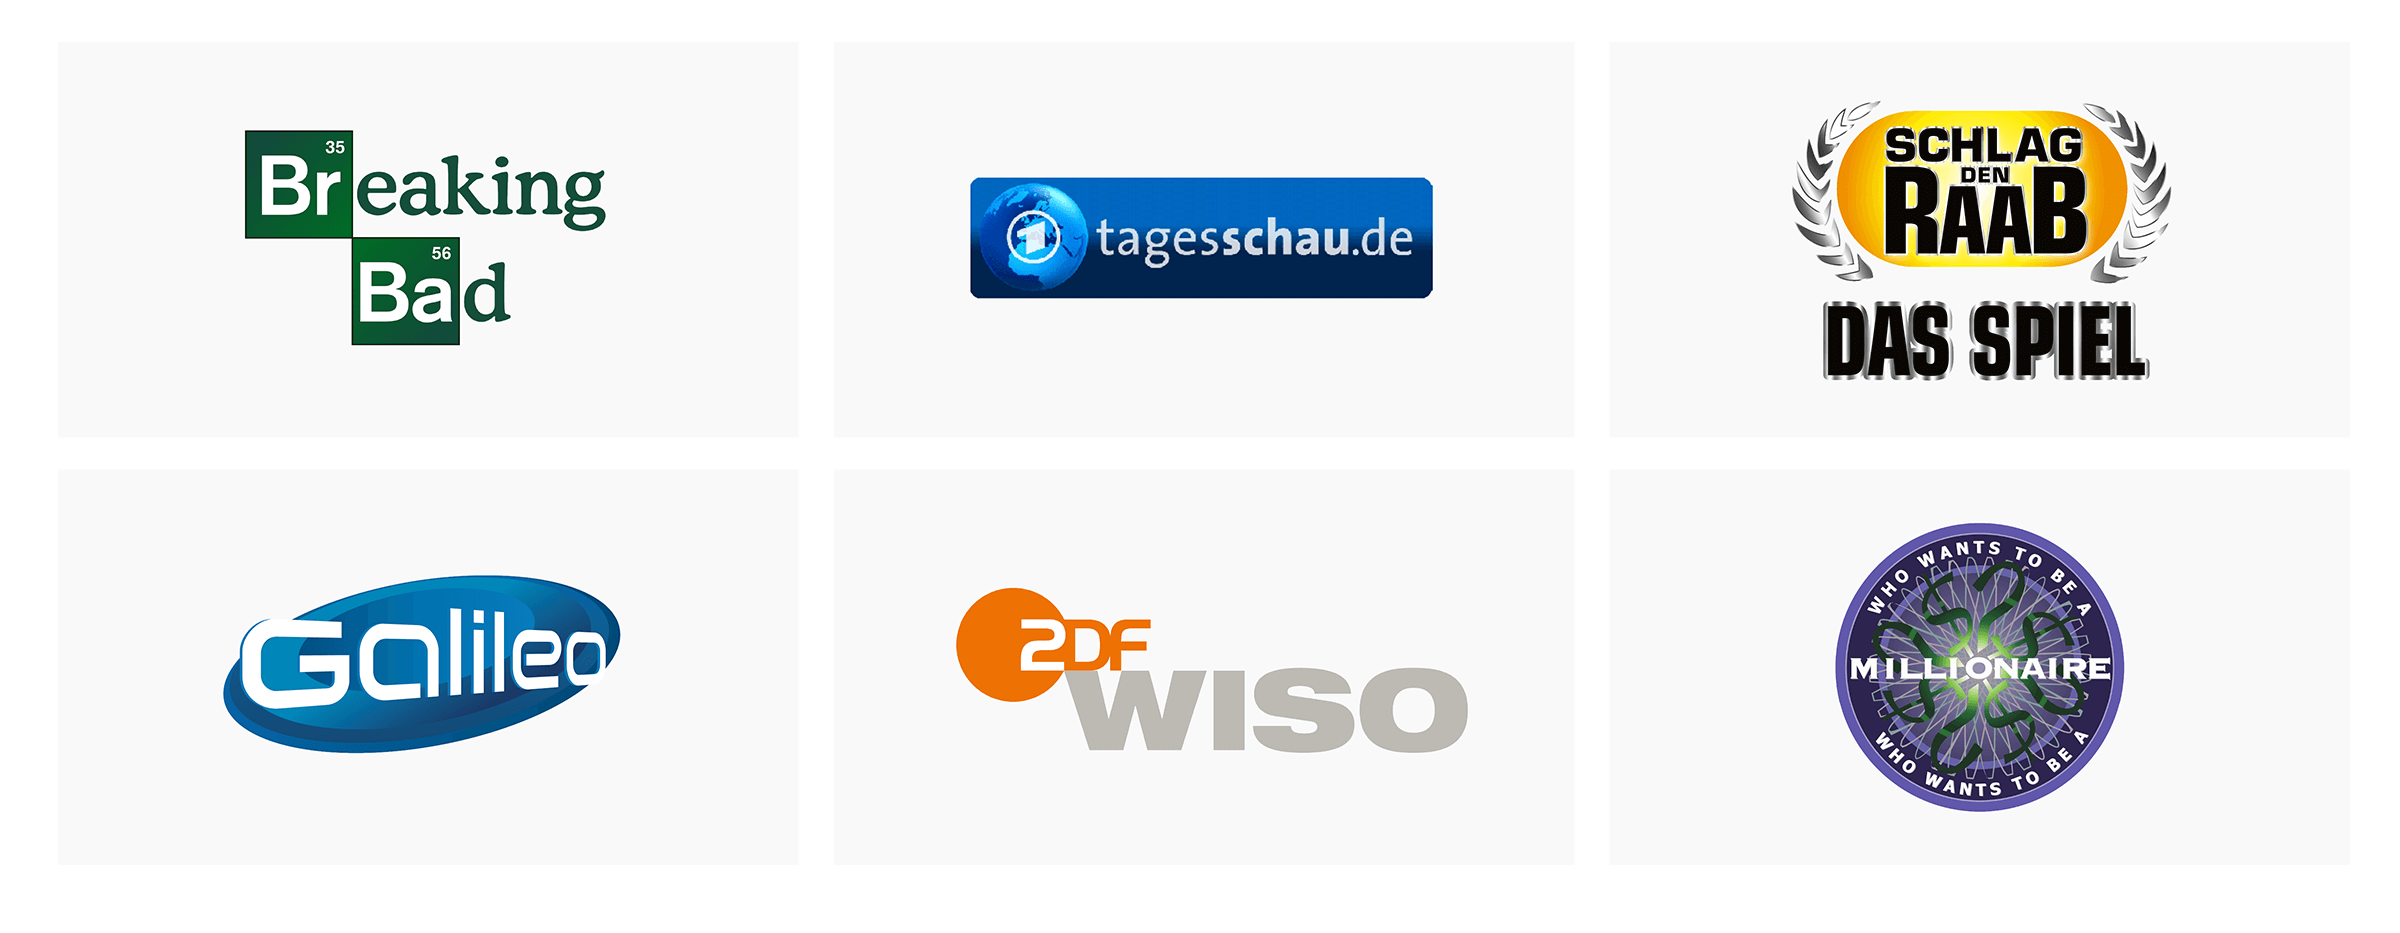 TV-Logos als Wall: Breaking Bad, Tagesschau, Schlag den Raab – Galileo, ZDF Wiso, Who wants to be a millionaire?